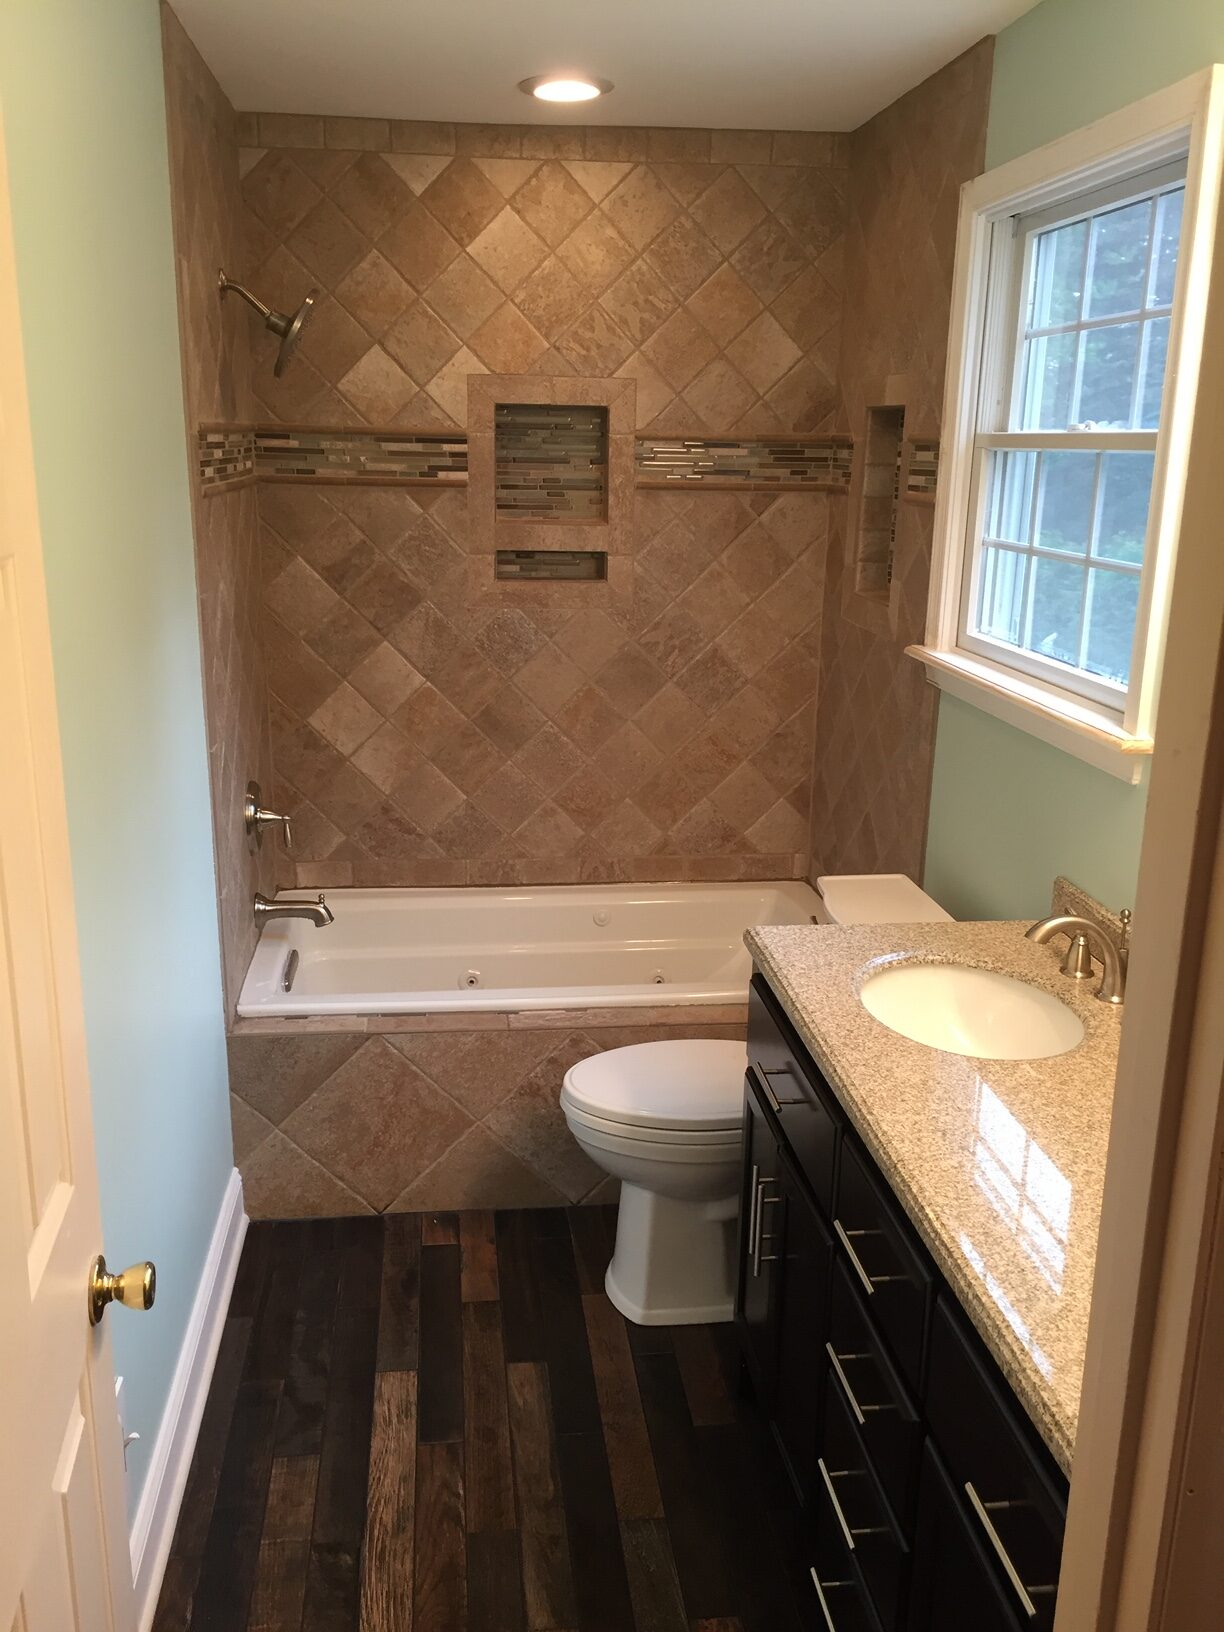 Bathroom flooring and upgrade